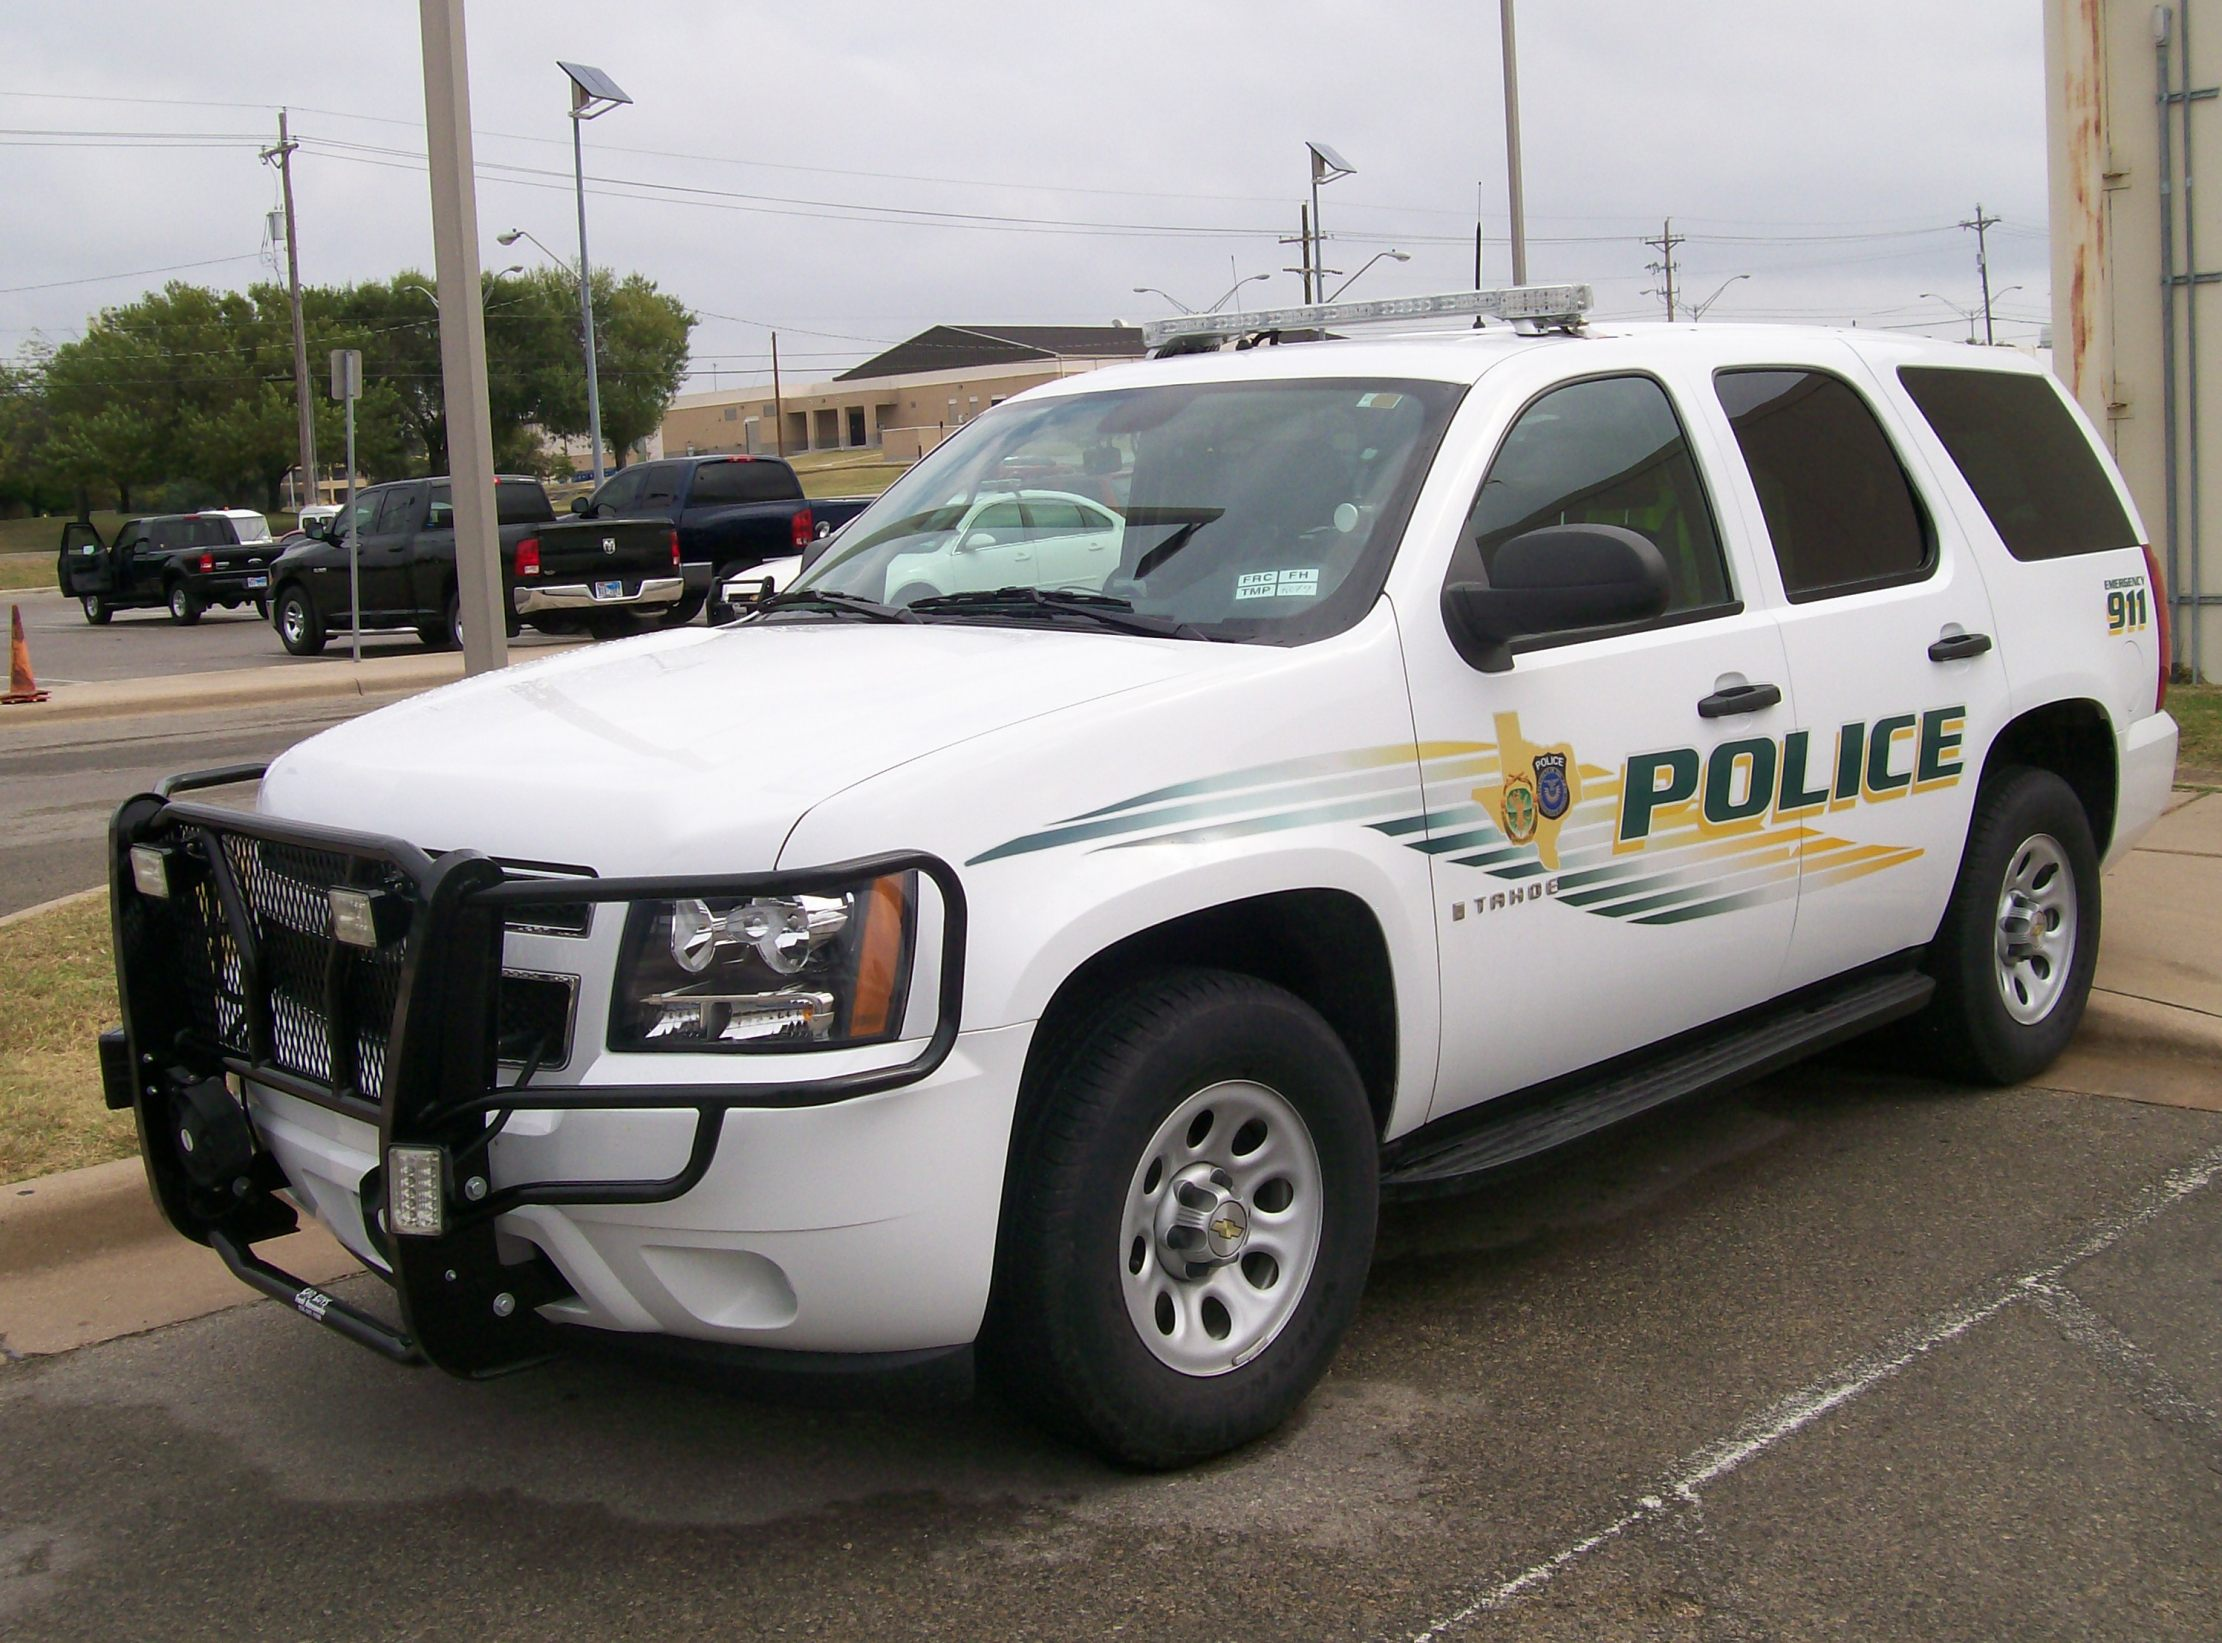 Police Cars for Sale Near Me Inspirational Police Cars